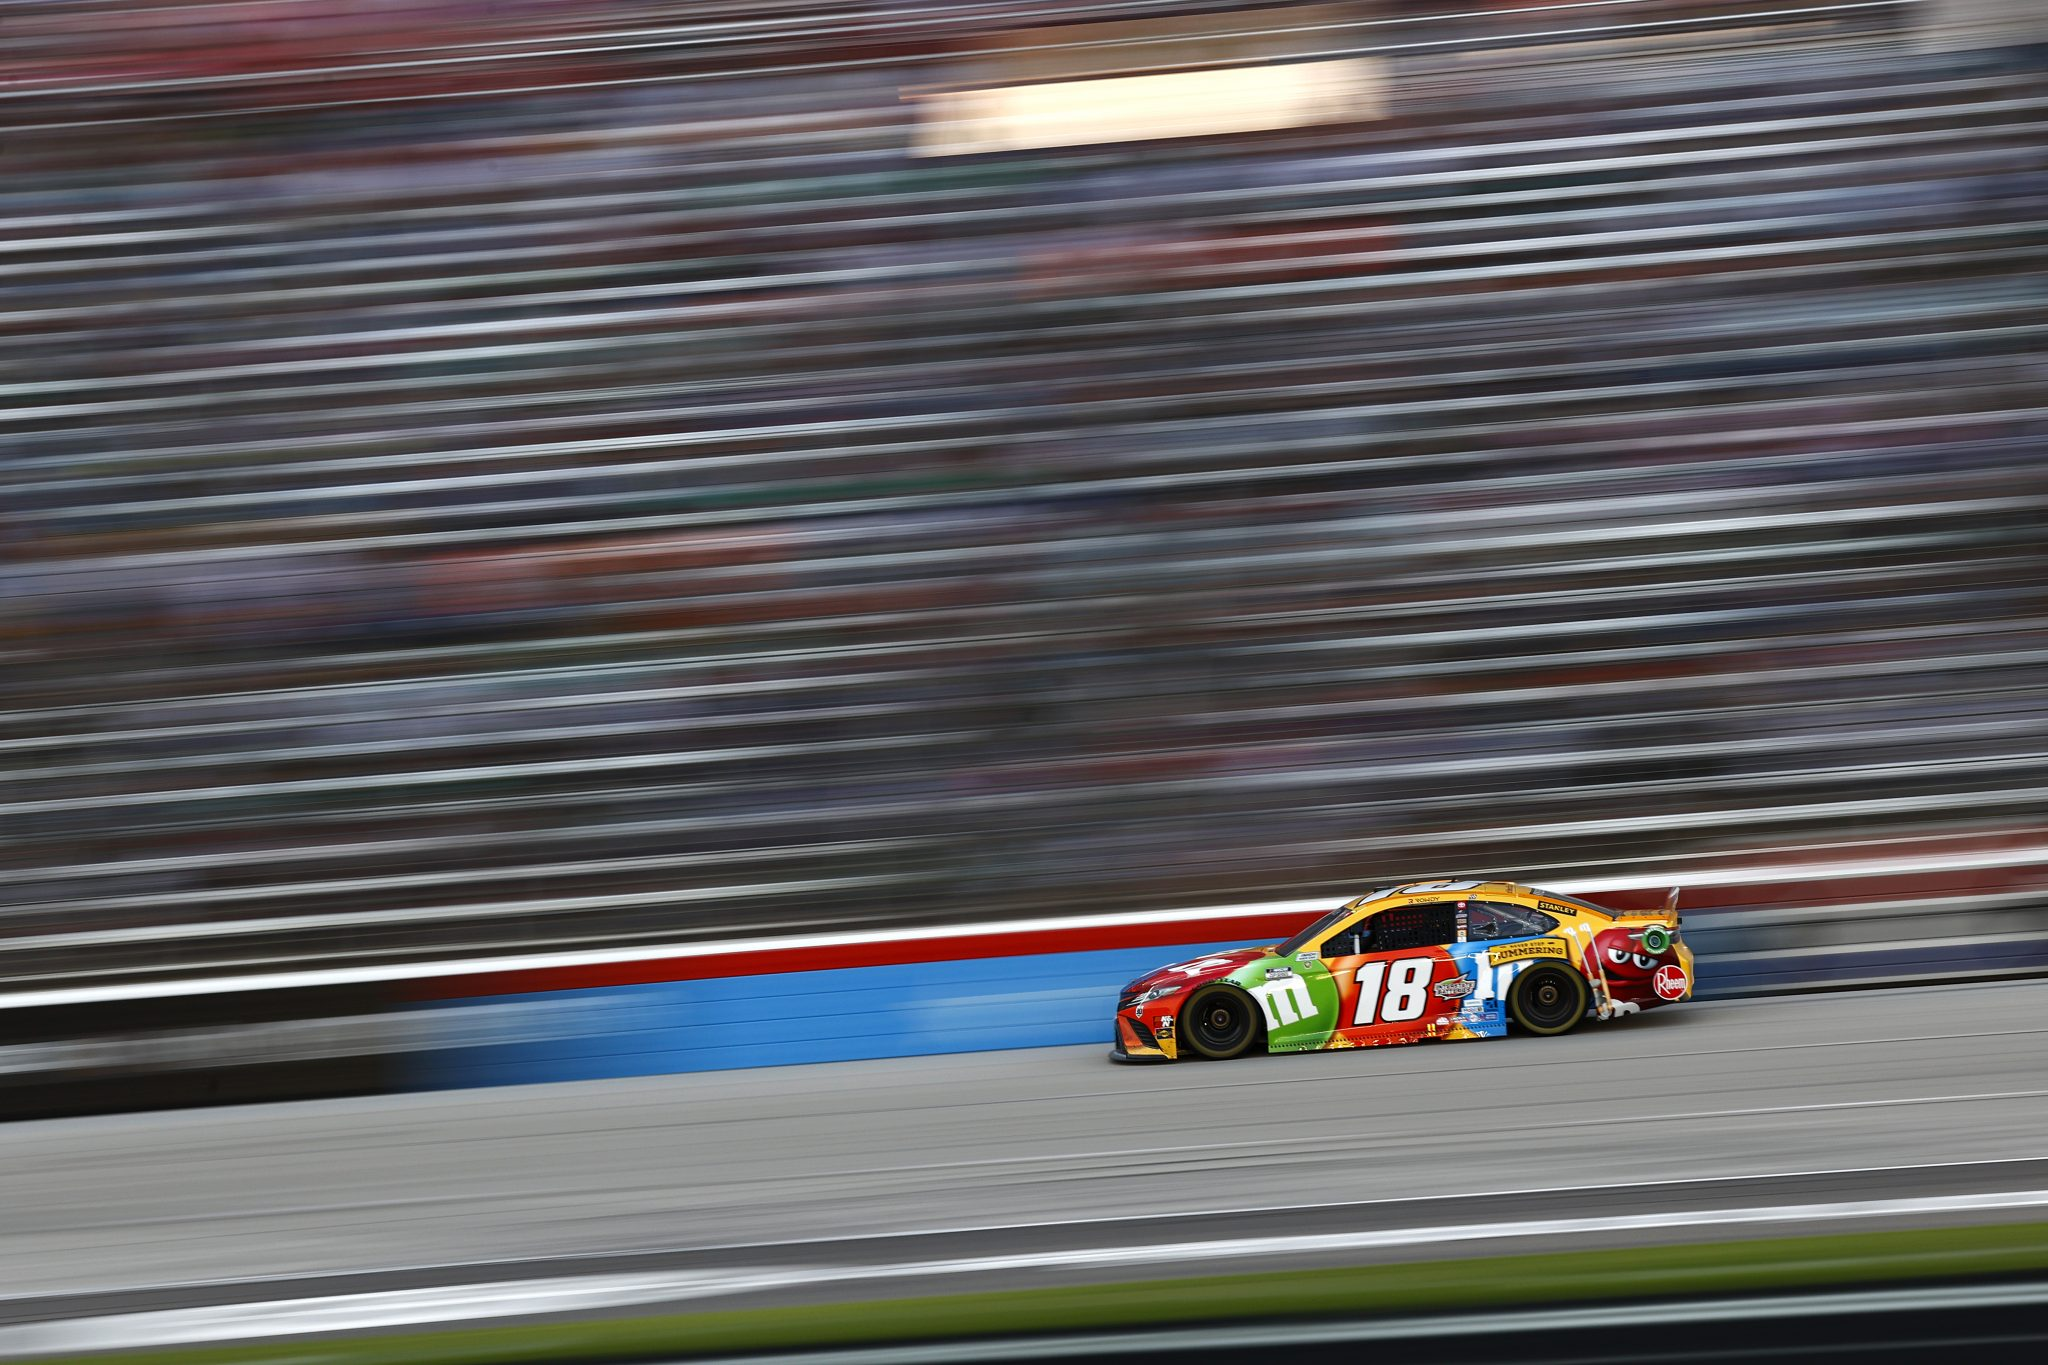 FORT WORTH, TEXAS - JUNE 13: Kyle Busch, driver of the #18 M&M's Summering Toyota, drives during the NASCAR All-Star Race at Texas Motor Speedway on June 13, 2021 in Fort Worth, Texas. (Photo by Jared C. Tilton/Getty Images) | Getty Images